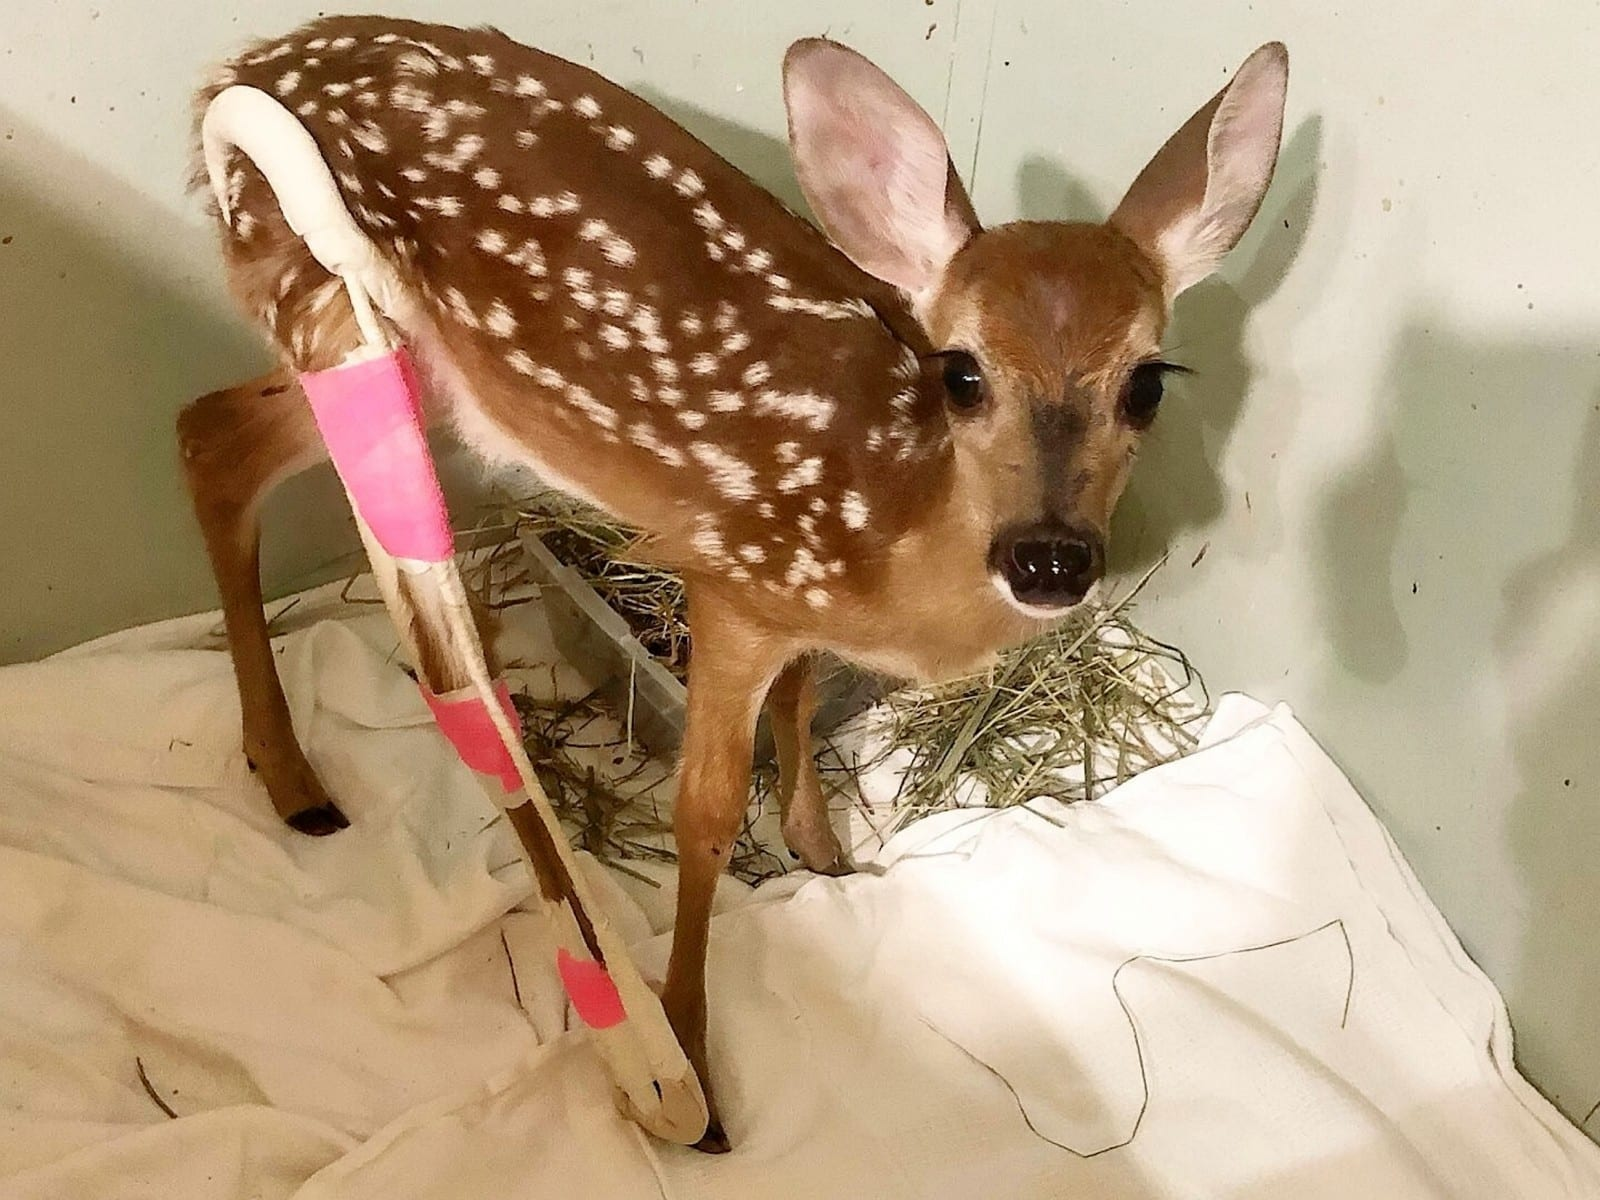 Meet The Adorable Baby Deer Who Was Found Abandoned With A Broken Leg And Now Sports A Bright Pink Cast